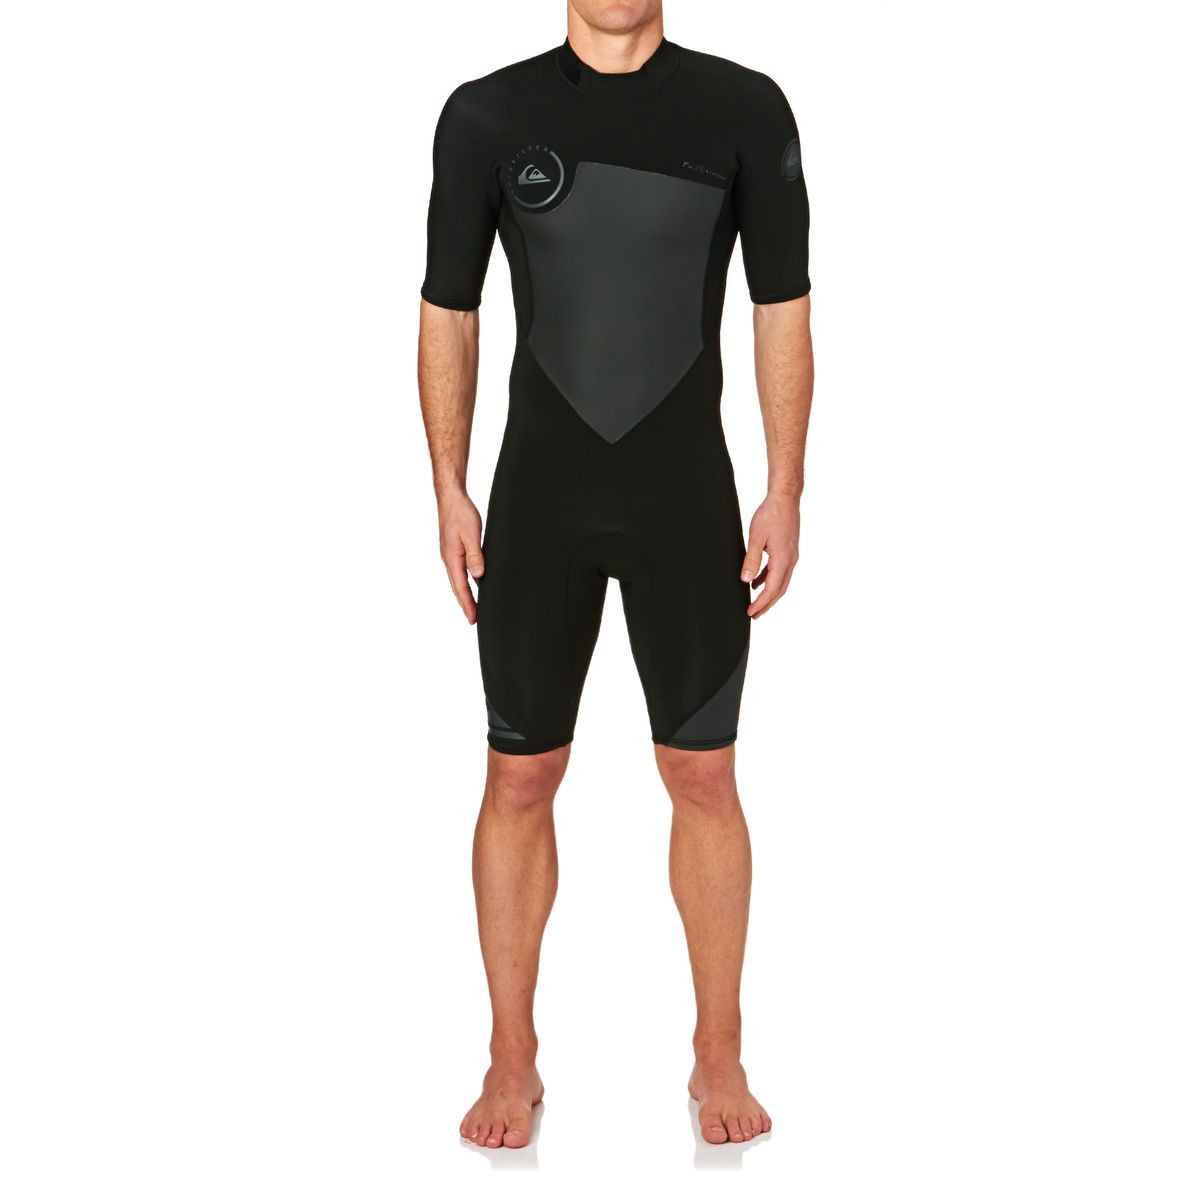 Quiksilver Syncro 2mm 2017 Back Zip Short Sleeve Shorty Wetsuit - Black